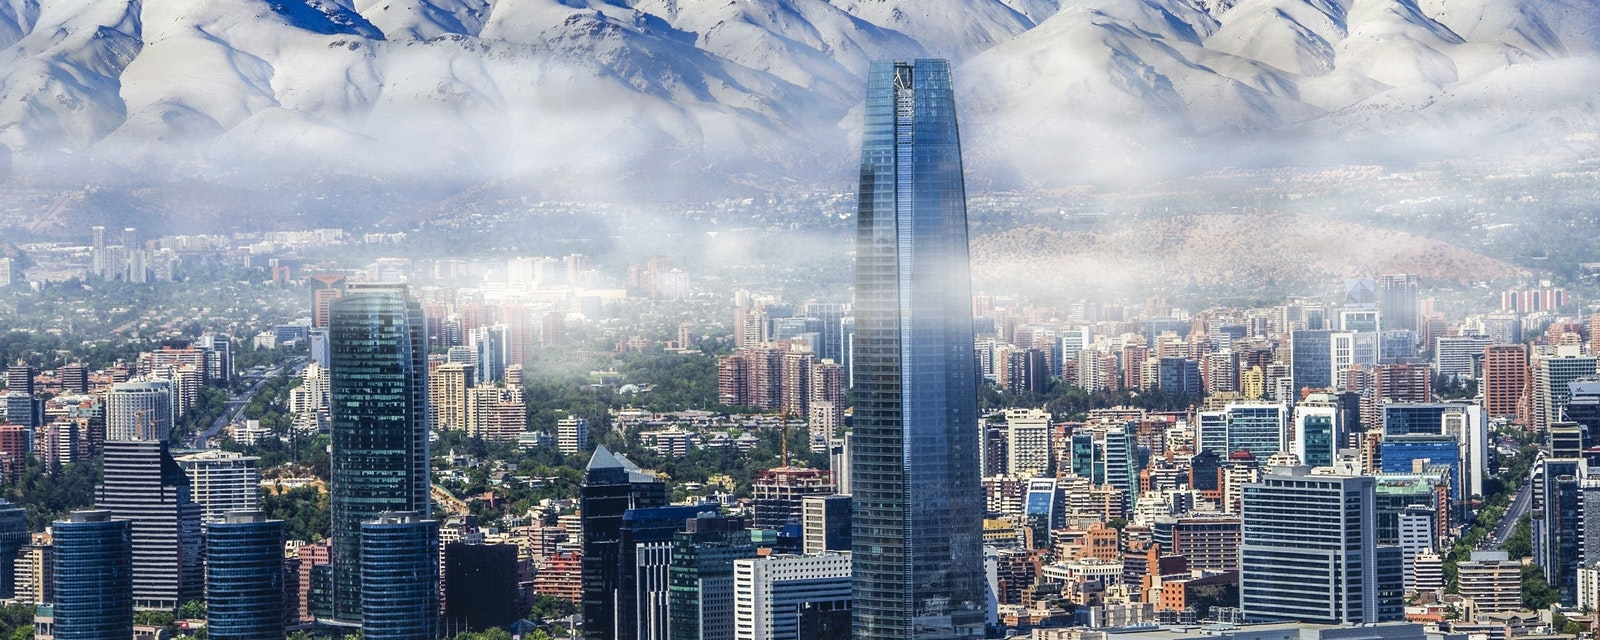 Aerial,View,On,Skyscrapers,Of,Financial,District,Of,Santiago,,Capital